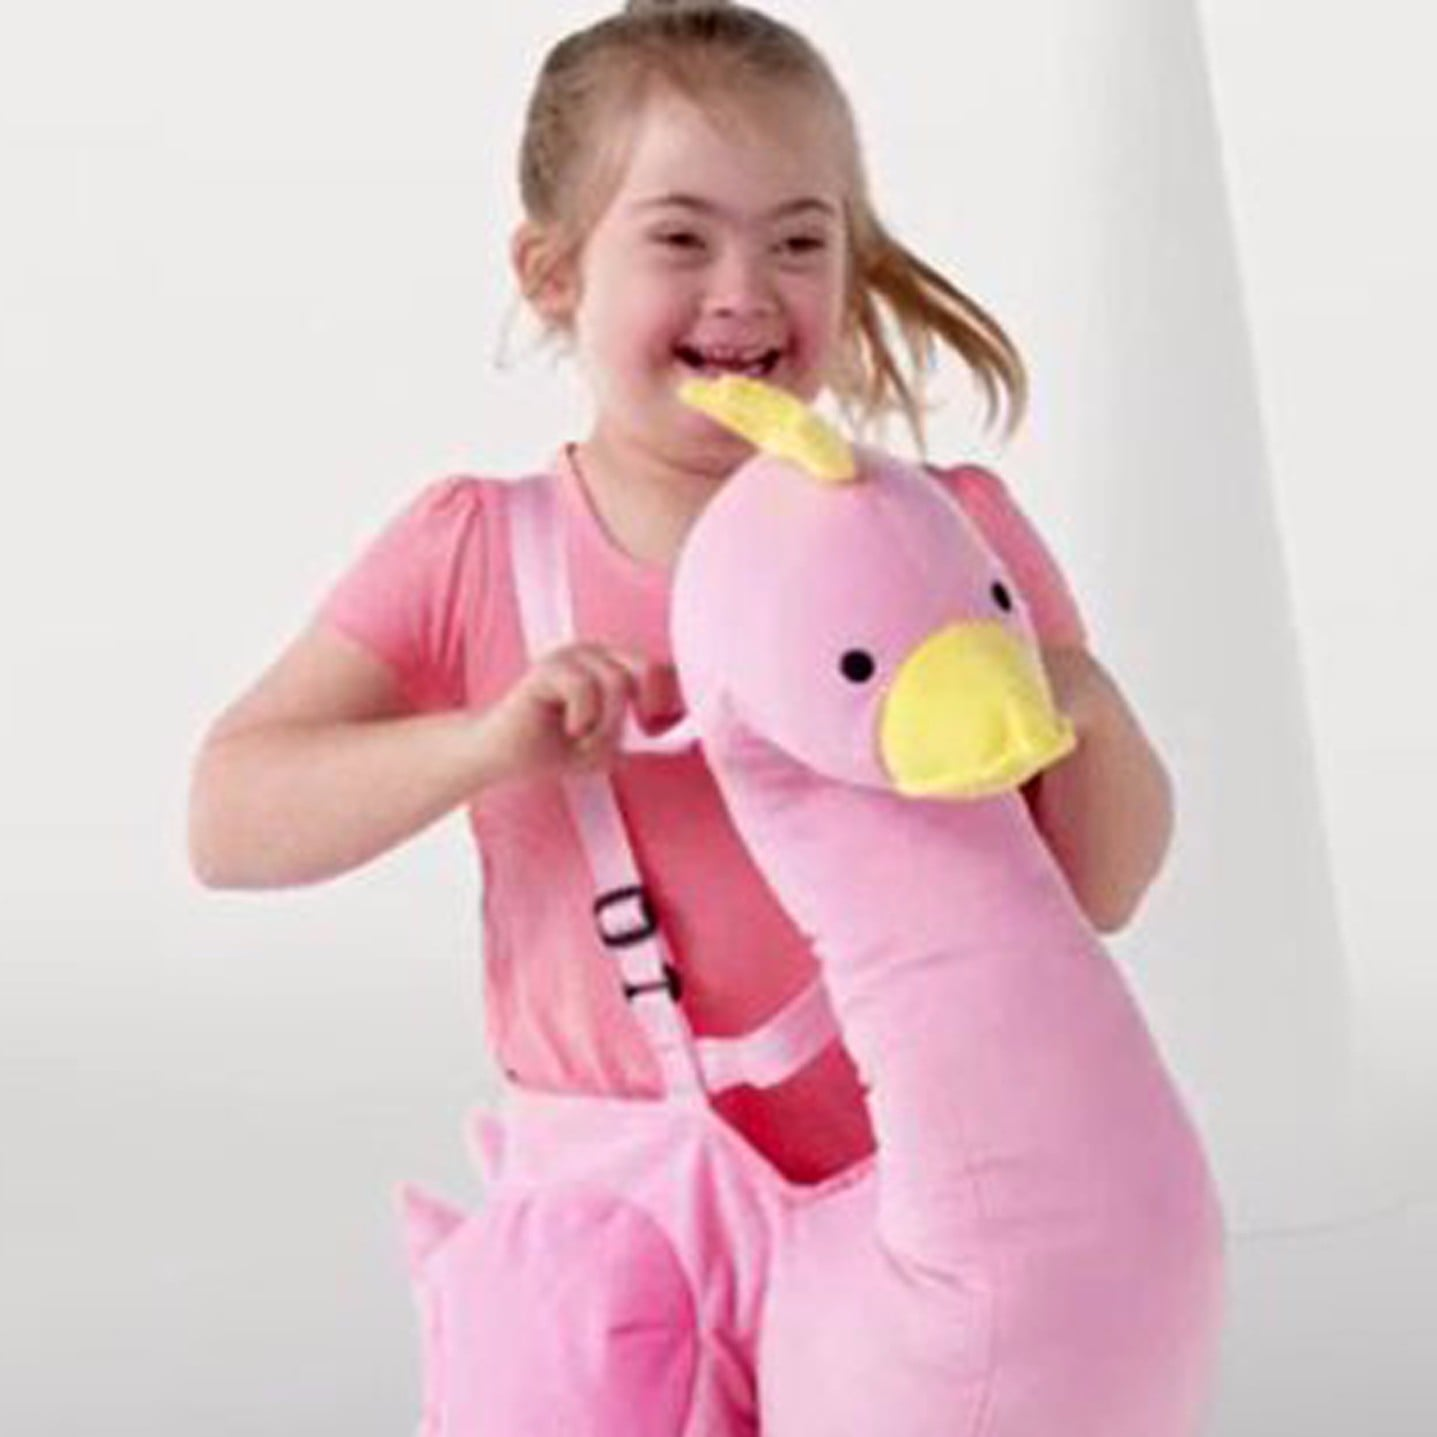 Kmart Down Syndrome Inclusion Kids Ad